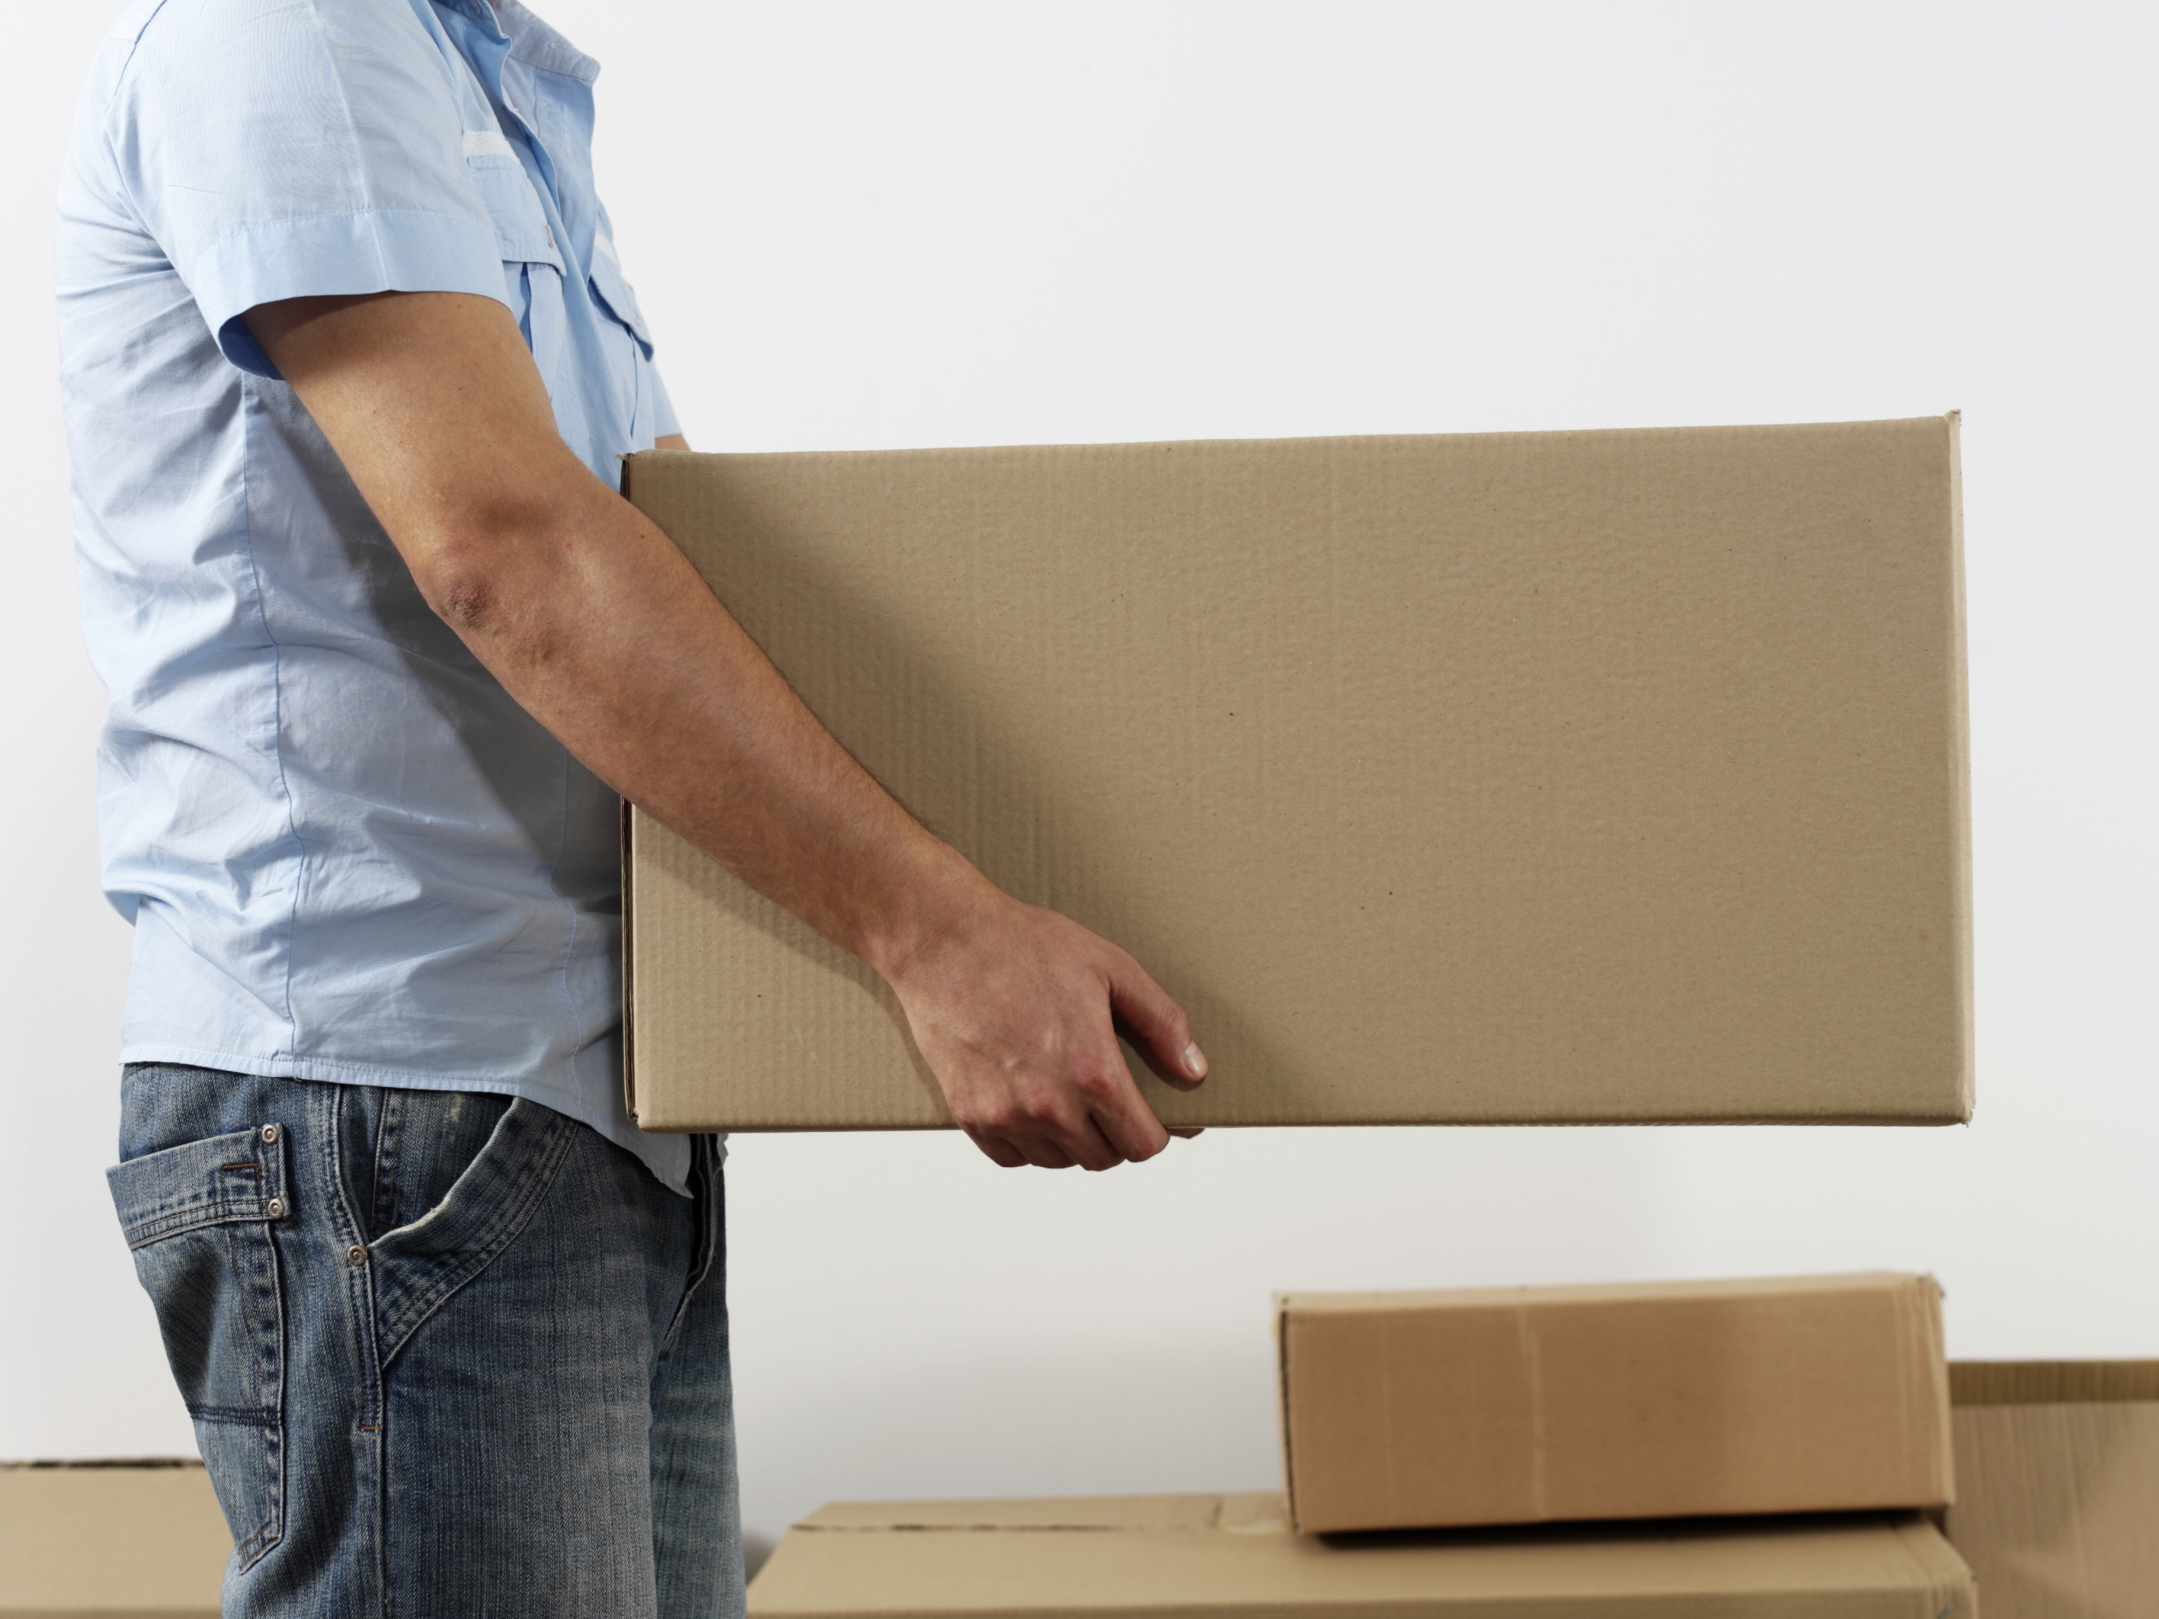 Armada moving company coupons in fort collins localsaver for Markley motors service coupons